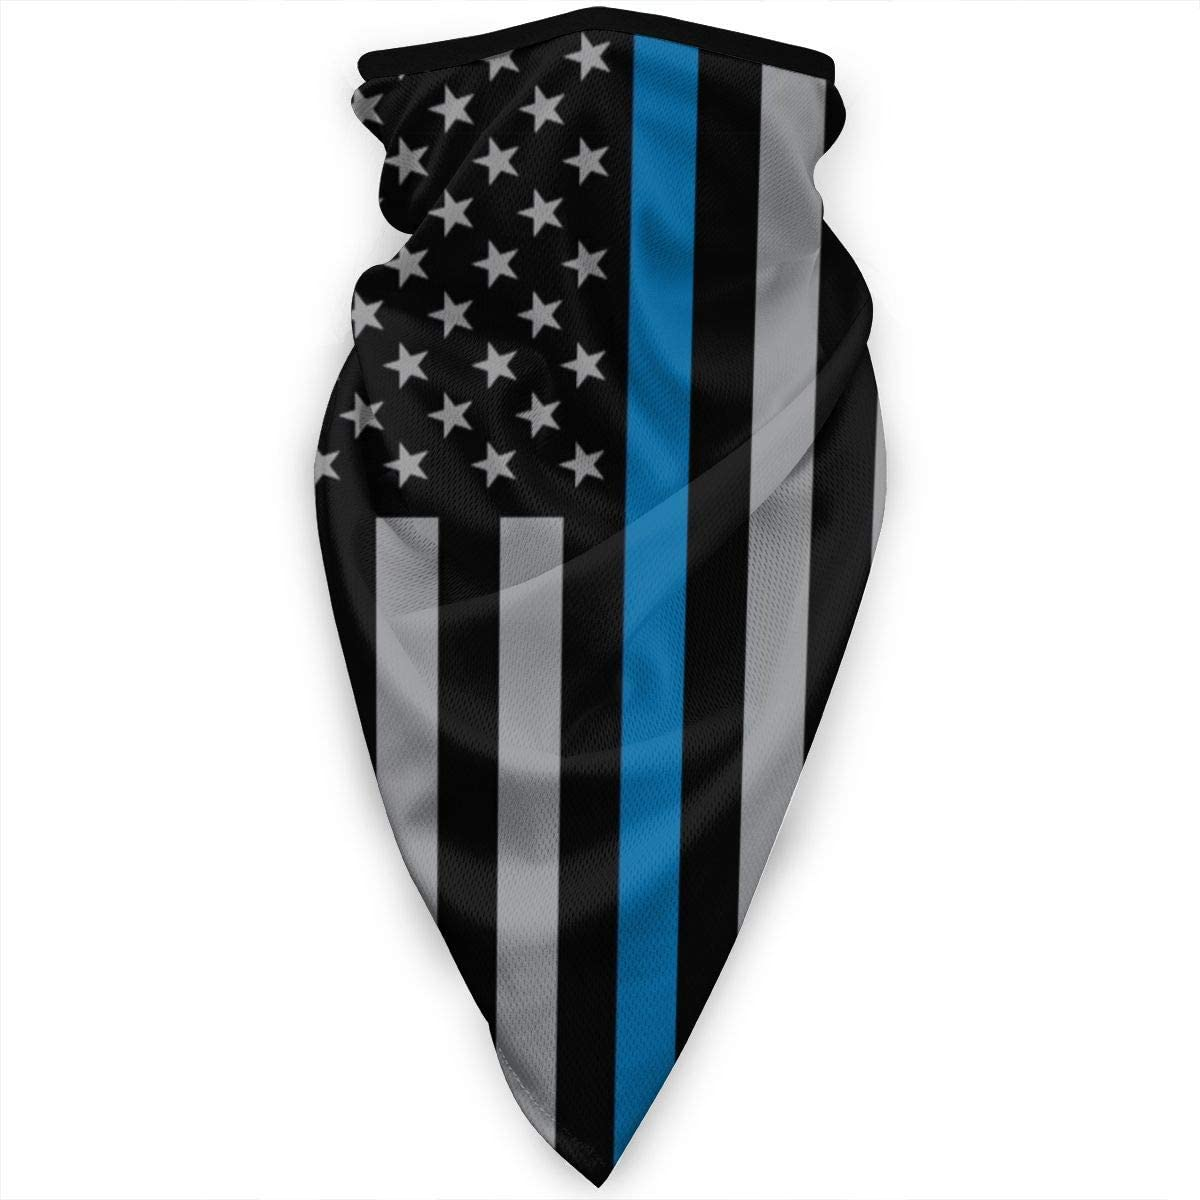 Police Blue Lives Matter Face Mask Neck Gaiters Bandana Scarf Balaclava Multifunctional Headwear for Outdoor Sports